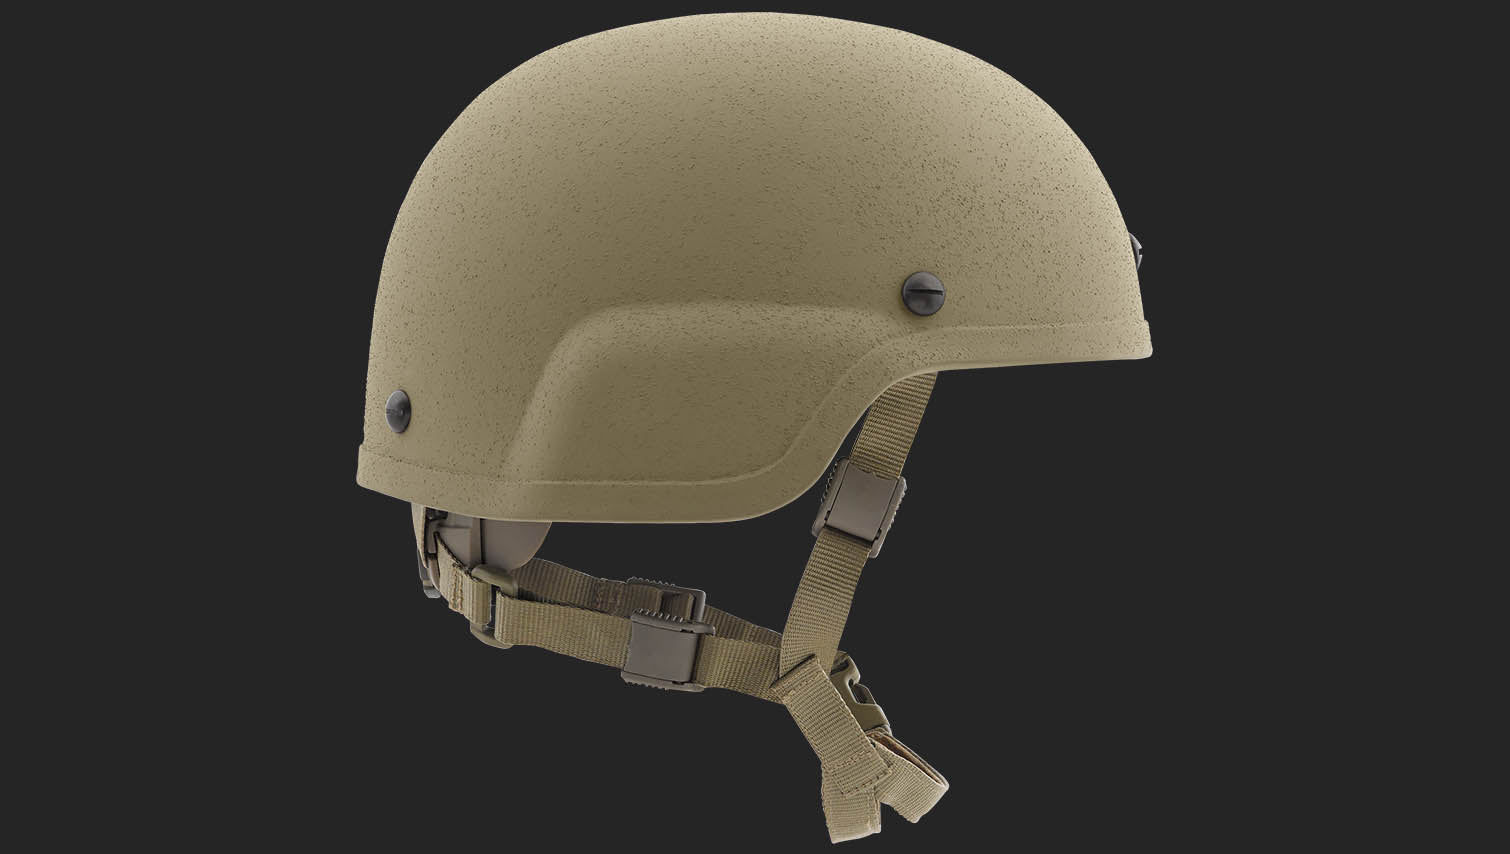 Viper A3 Helmet Systems Compatible Products